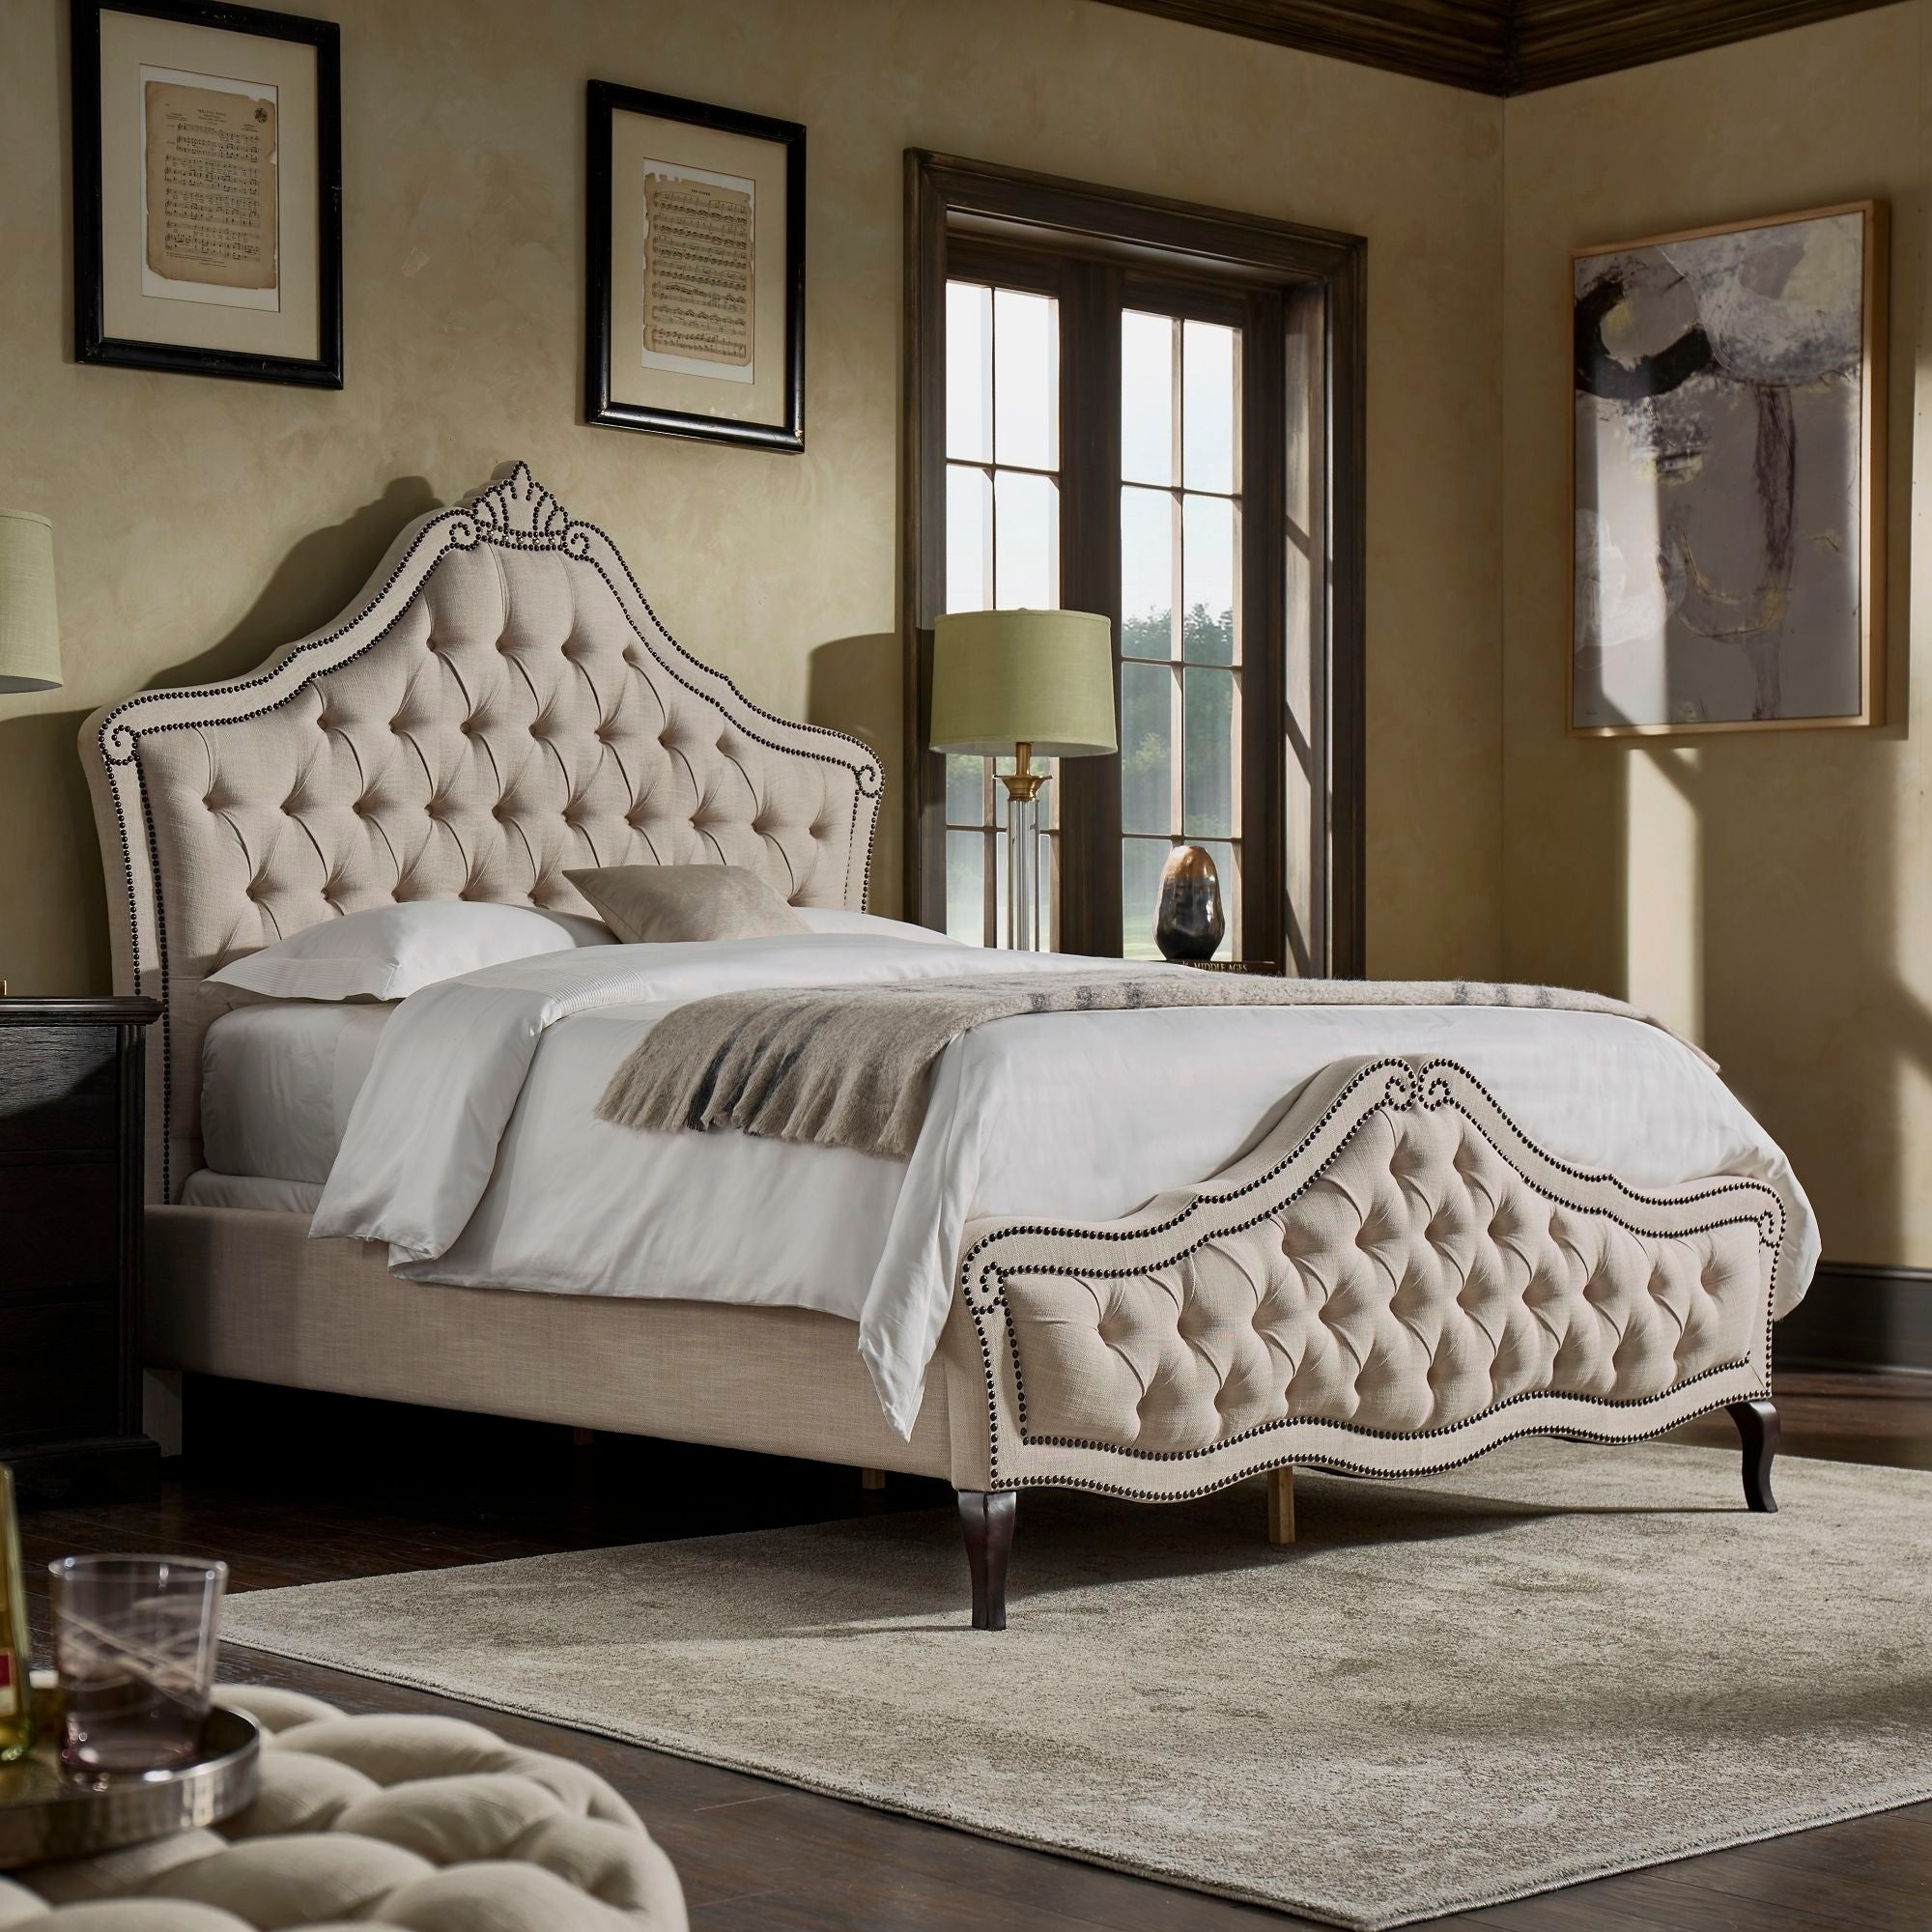 Nessa-Tufted-Beige-Scroll-Bed-with-Bronze-Nailhead-Trim-by-iNSPIRE-Q-Classic-3d7124ce-e324-4377-bd1e-40ae5f5b5afb.jpg